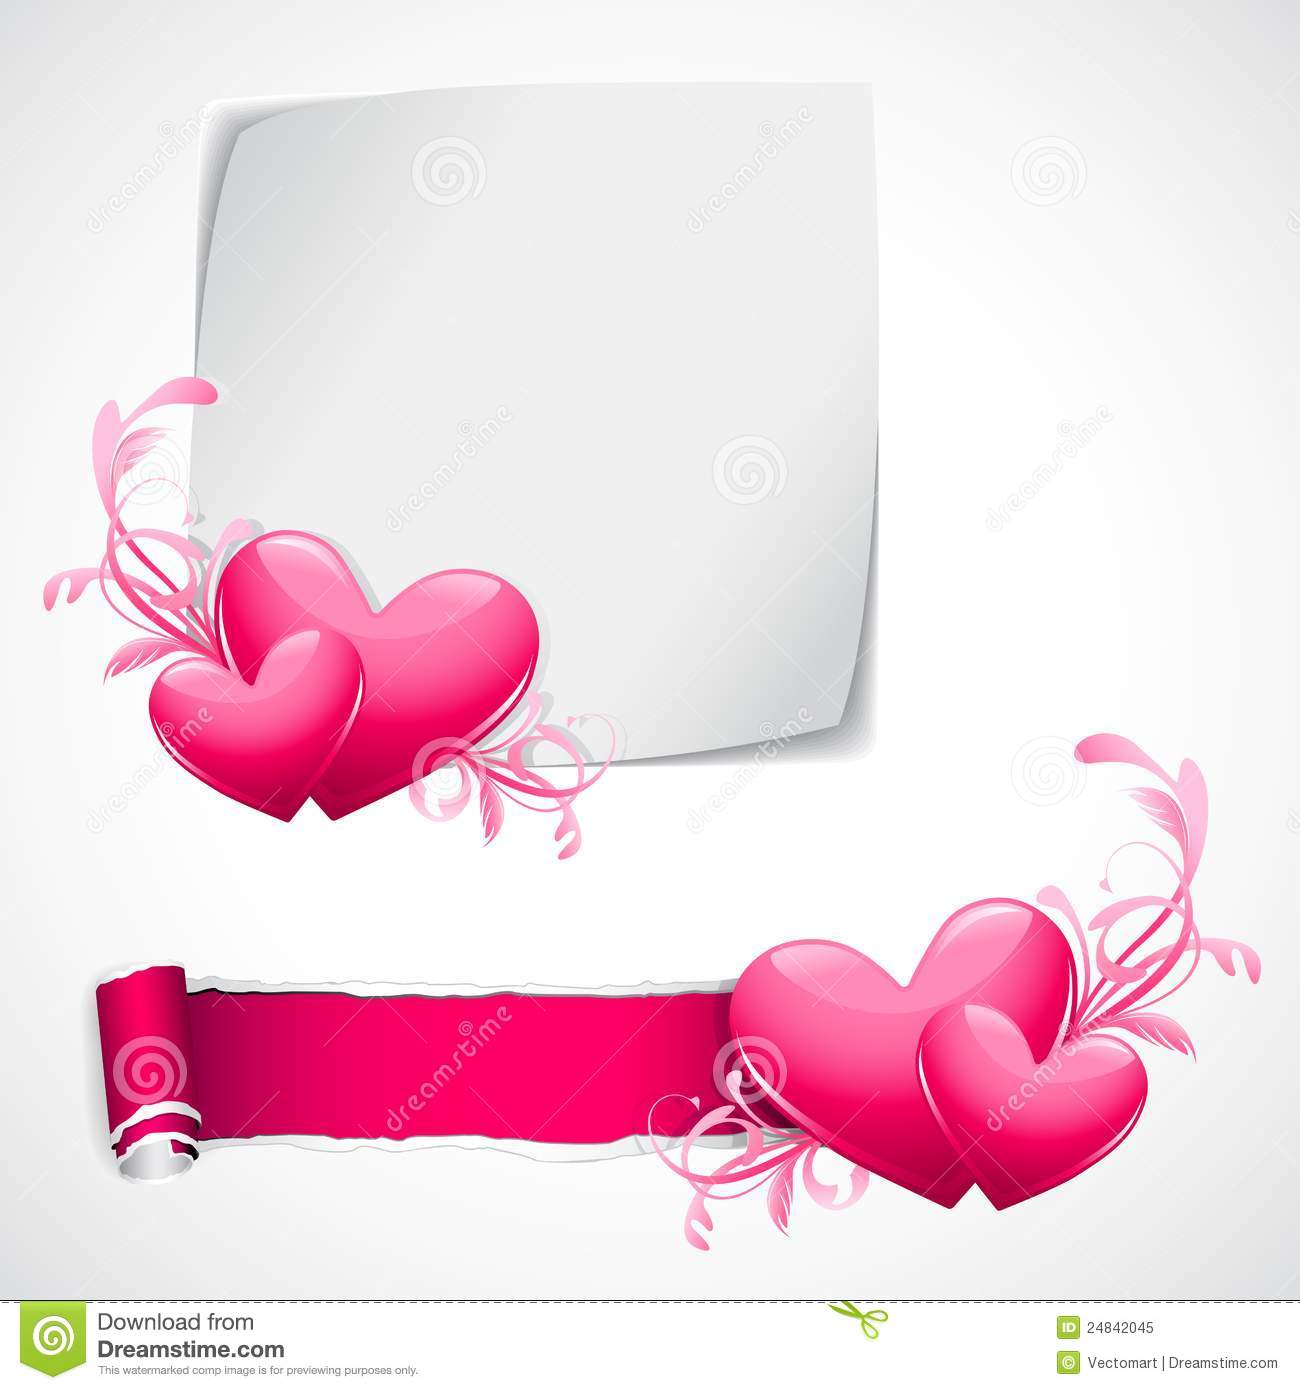 Romantic love wallpaper download